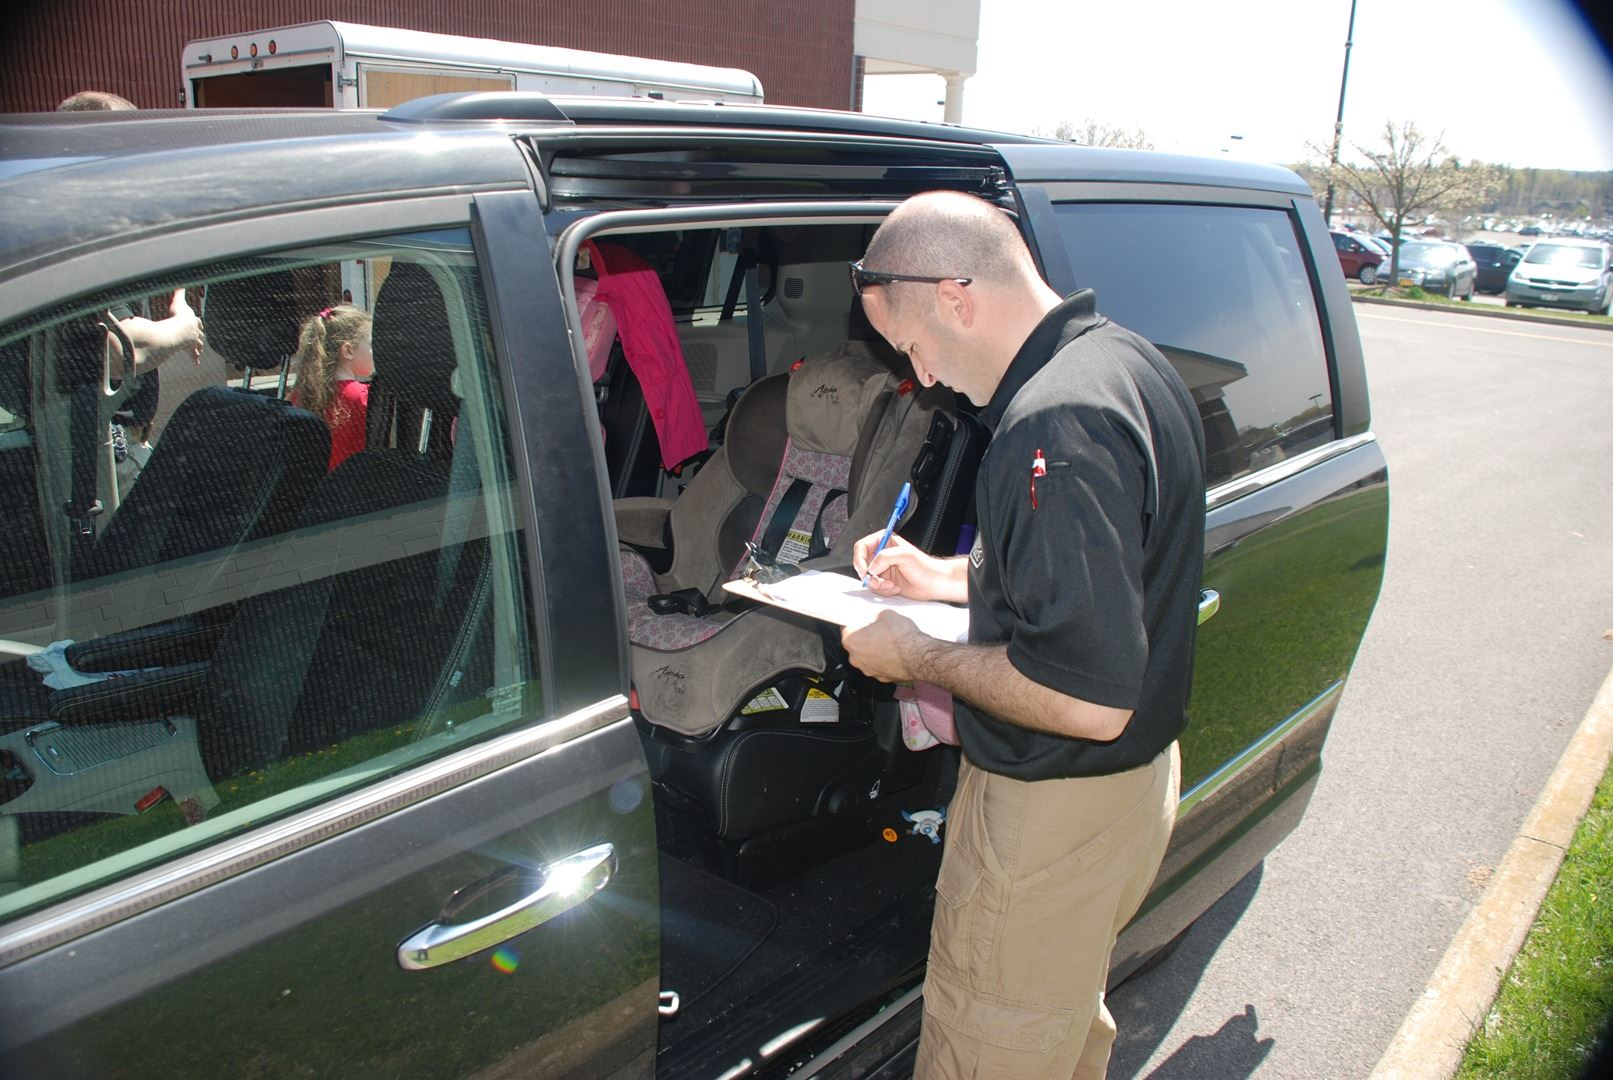 A technician inspects a child safety seat for proper installation